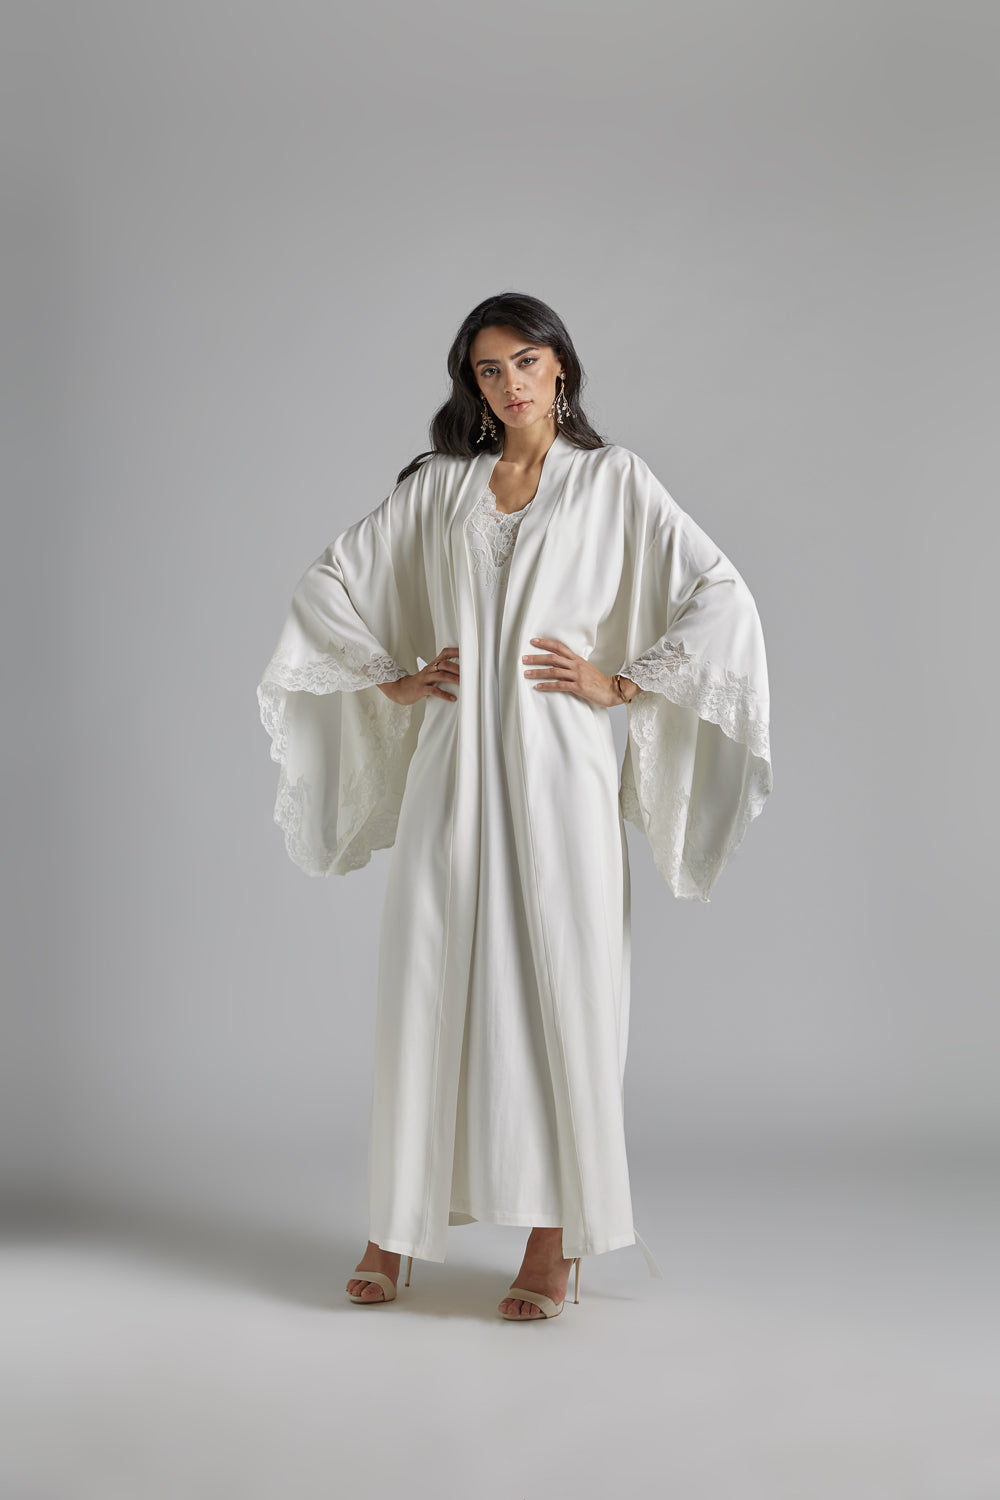 Trimmed Rayon Kimono and Trimmed Combed Cotton Nightie